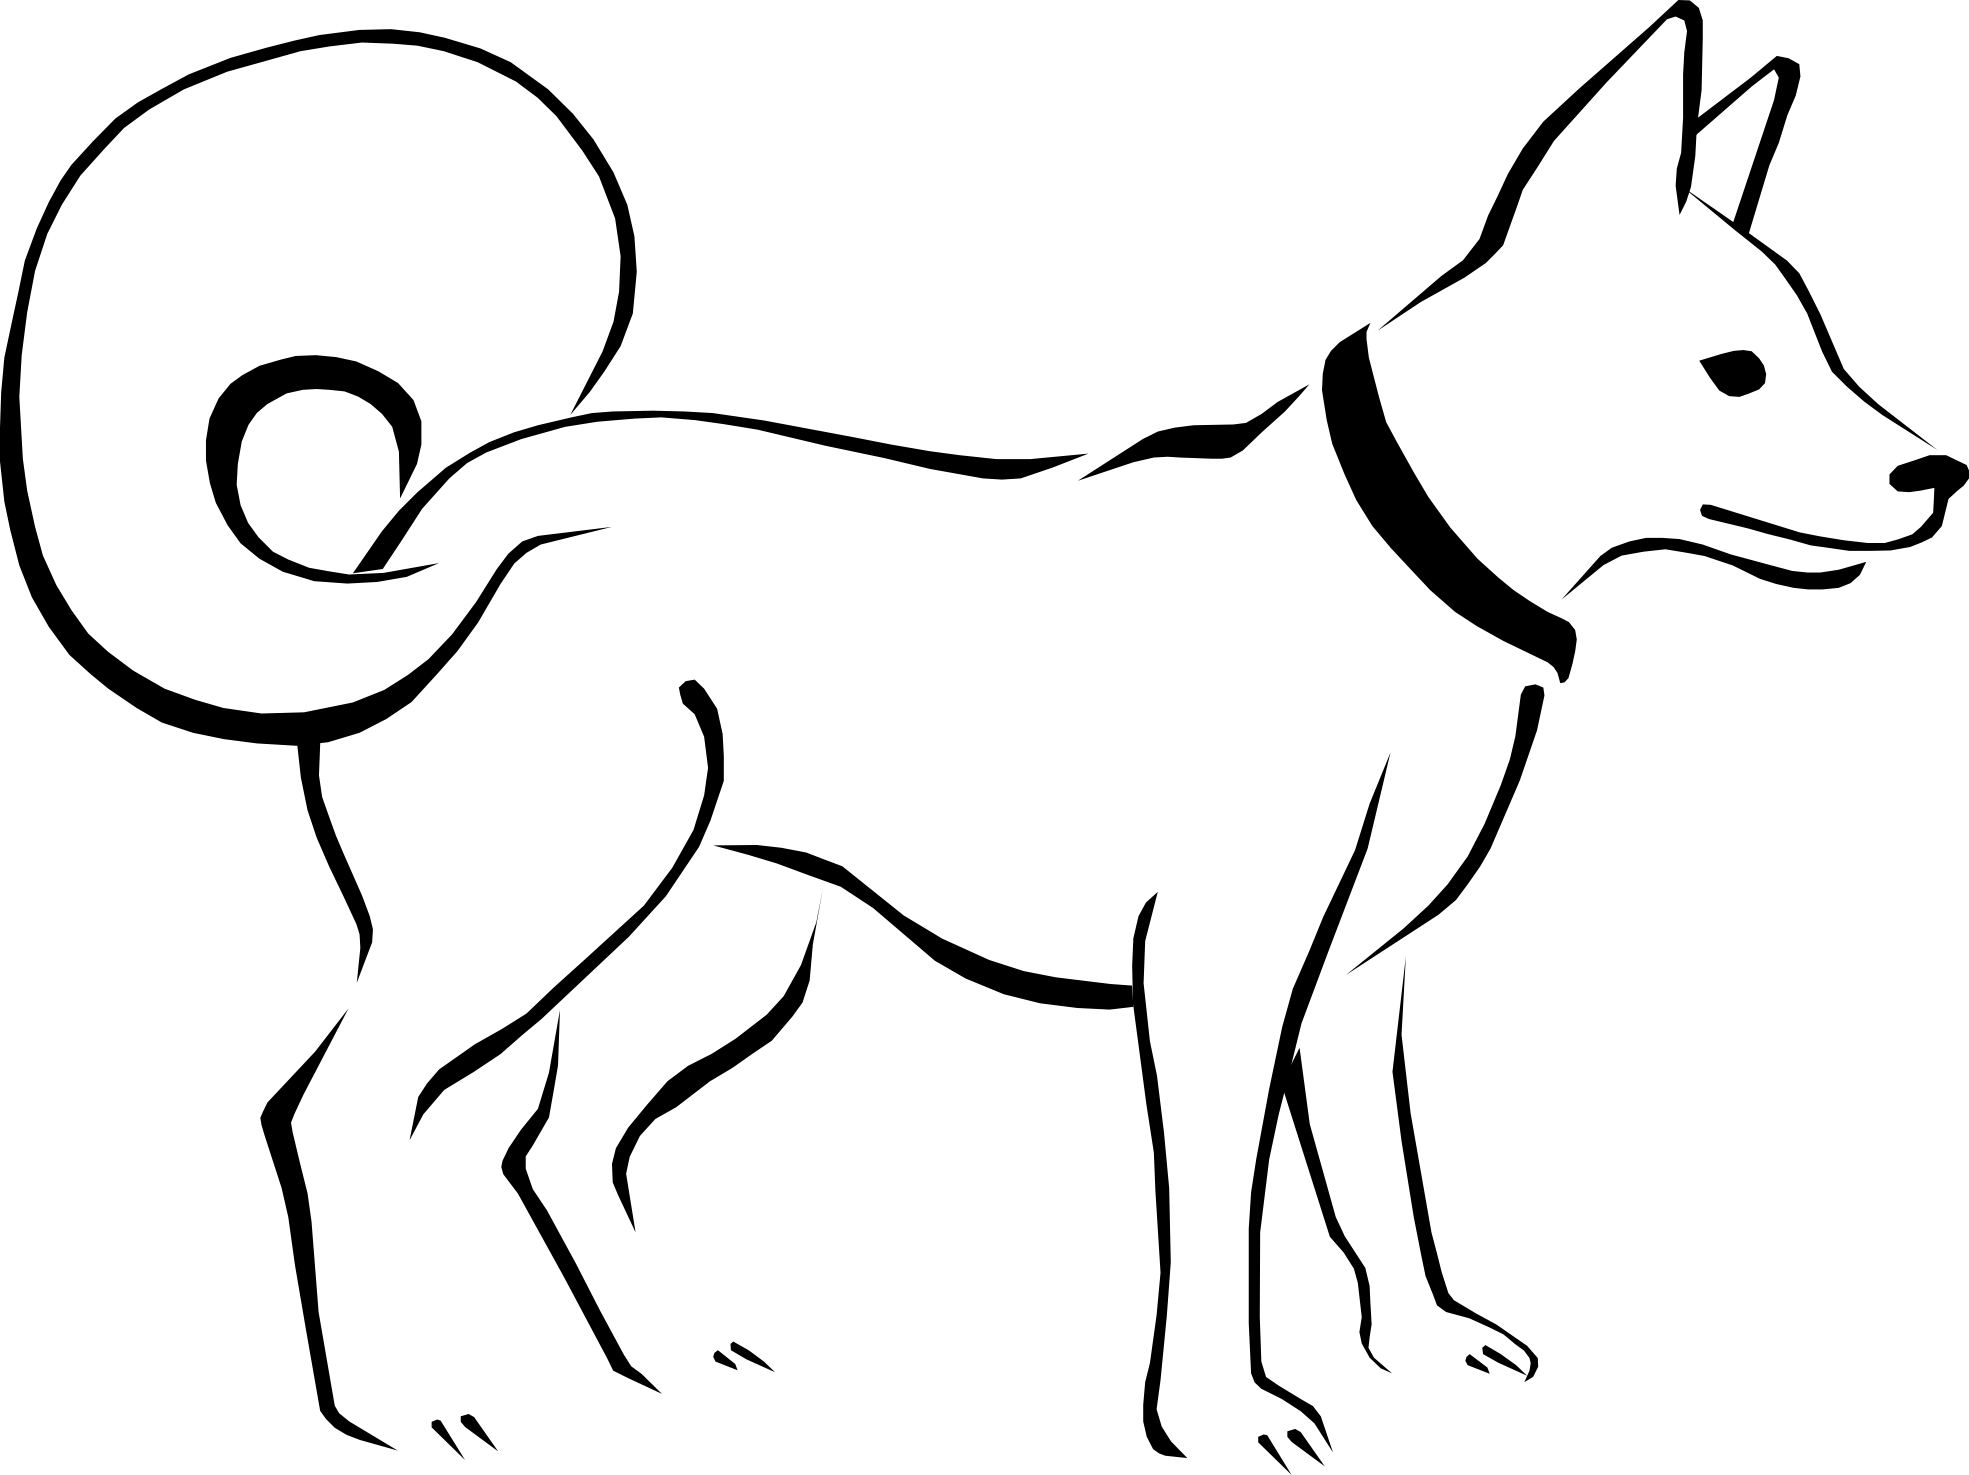 Dog clipart images jpg transparent library Dogs Clipart - clipart jpg transparent library